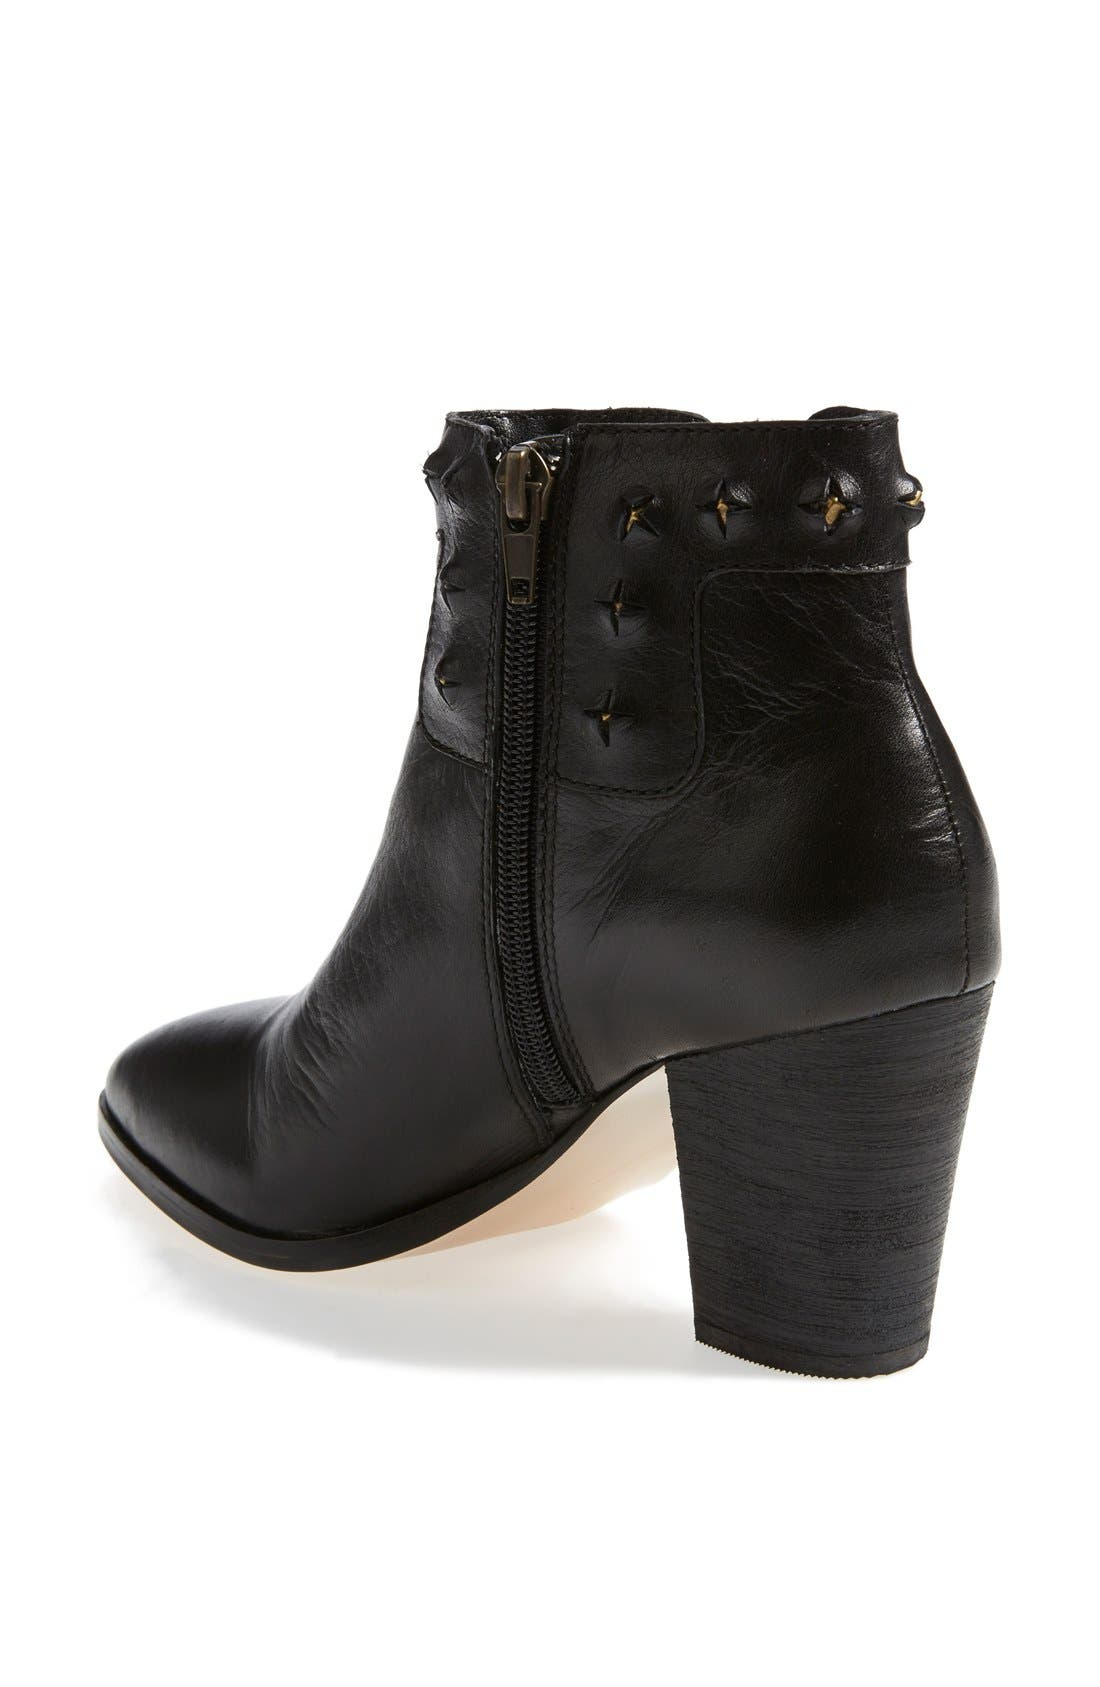 DV BY DOLCE VITA,                             'Cactus' Studded Bootie,                             Alternate thumbnail 2, color,                             004